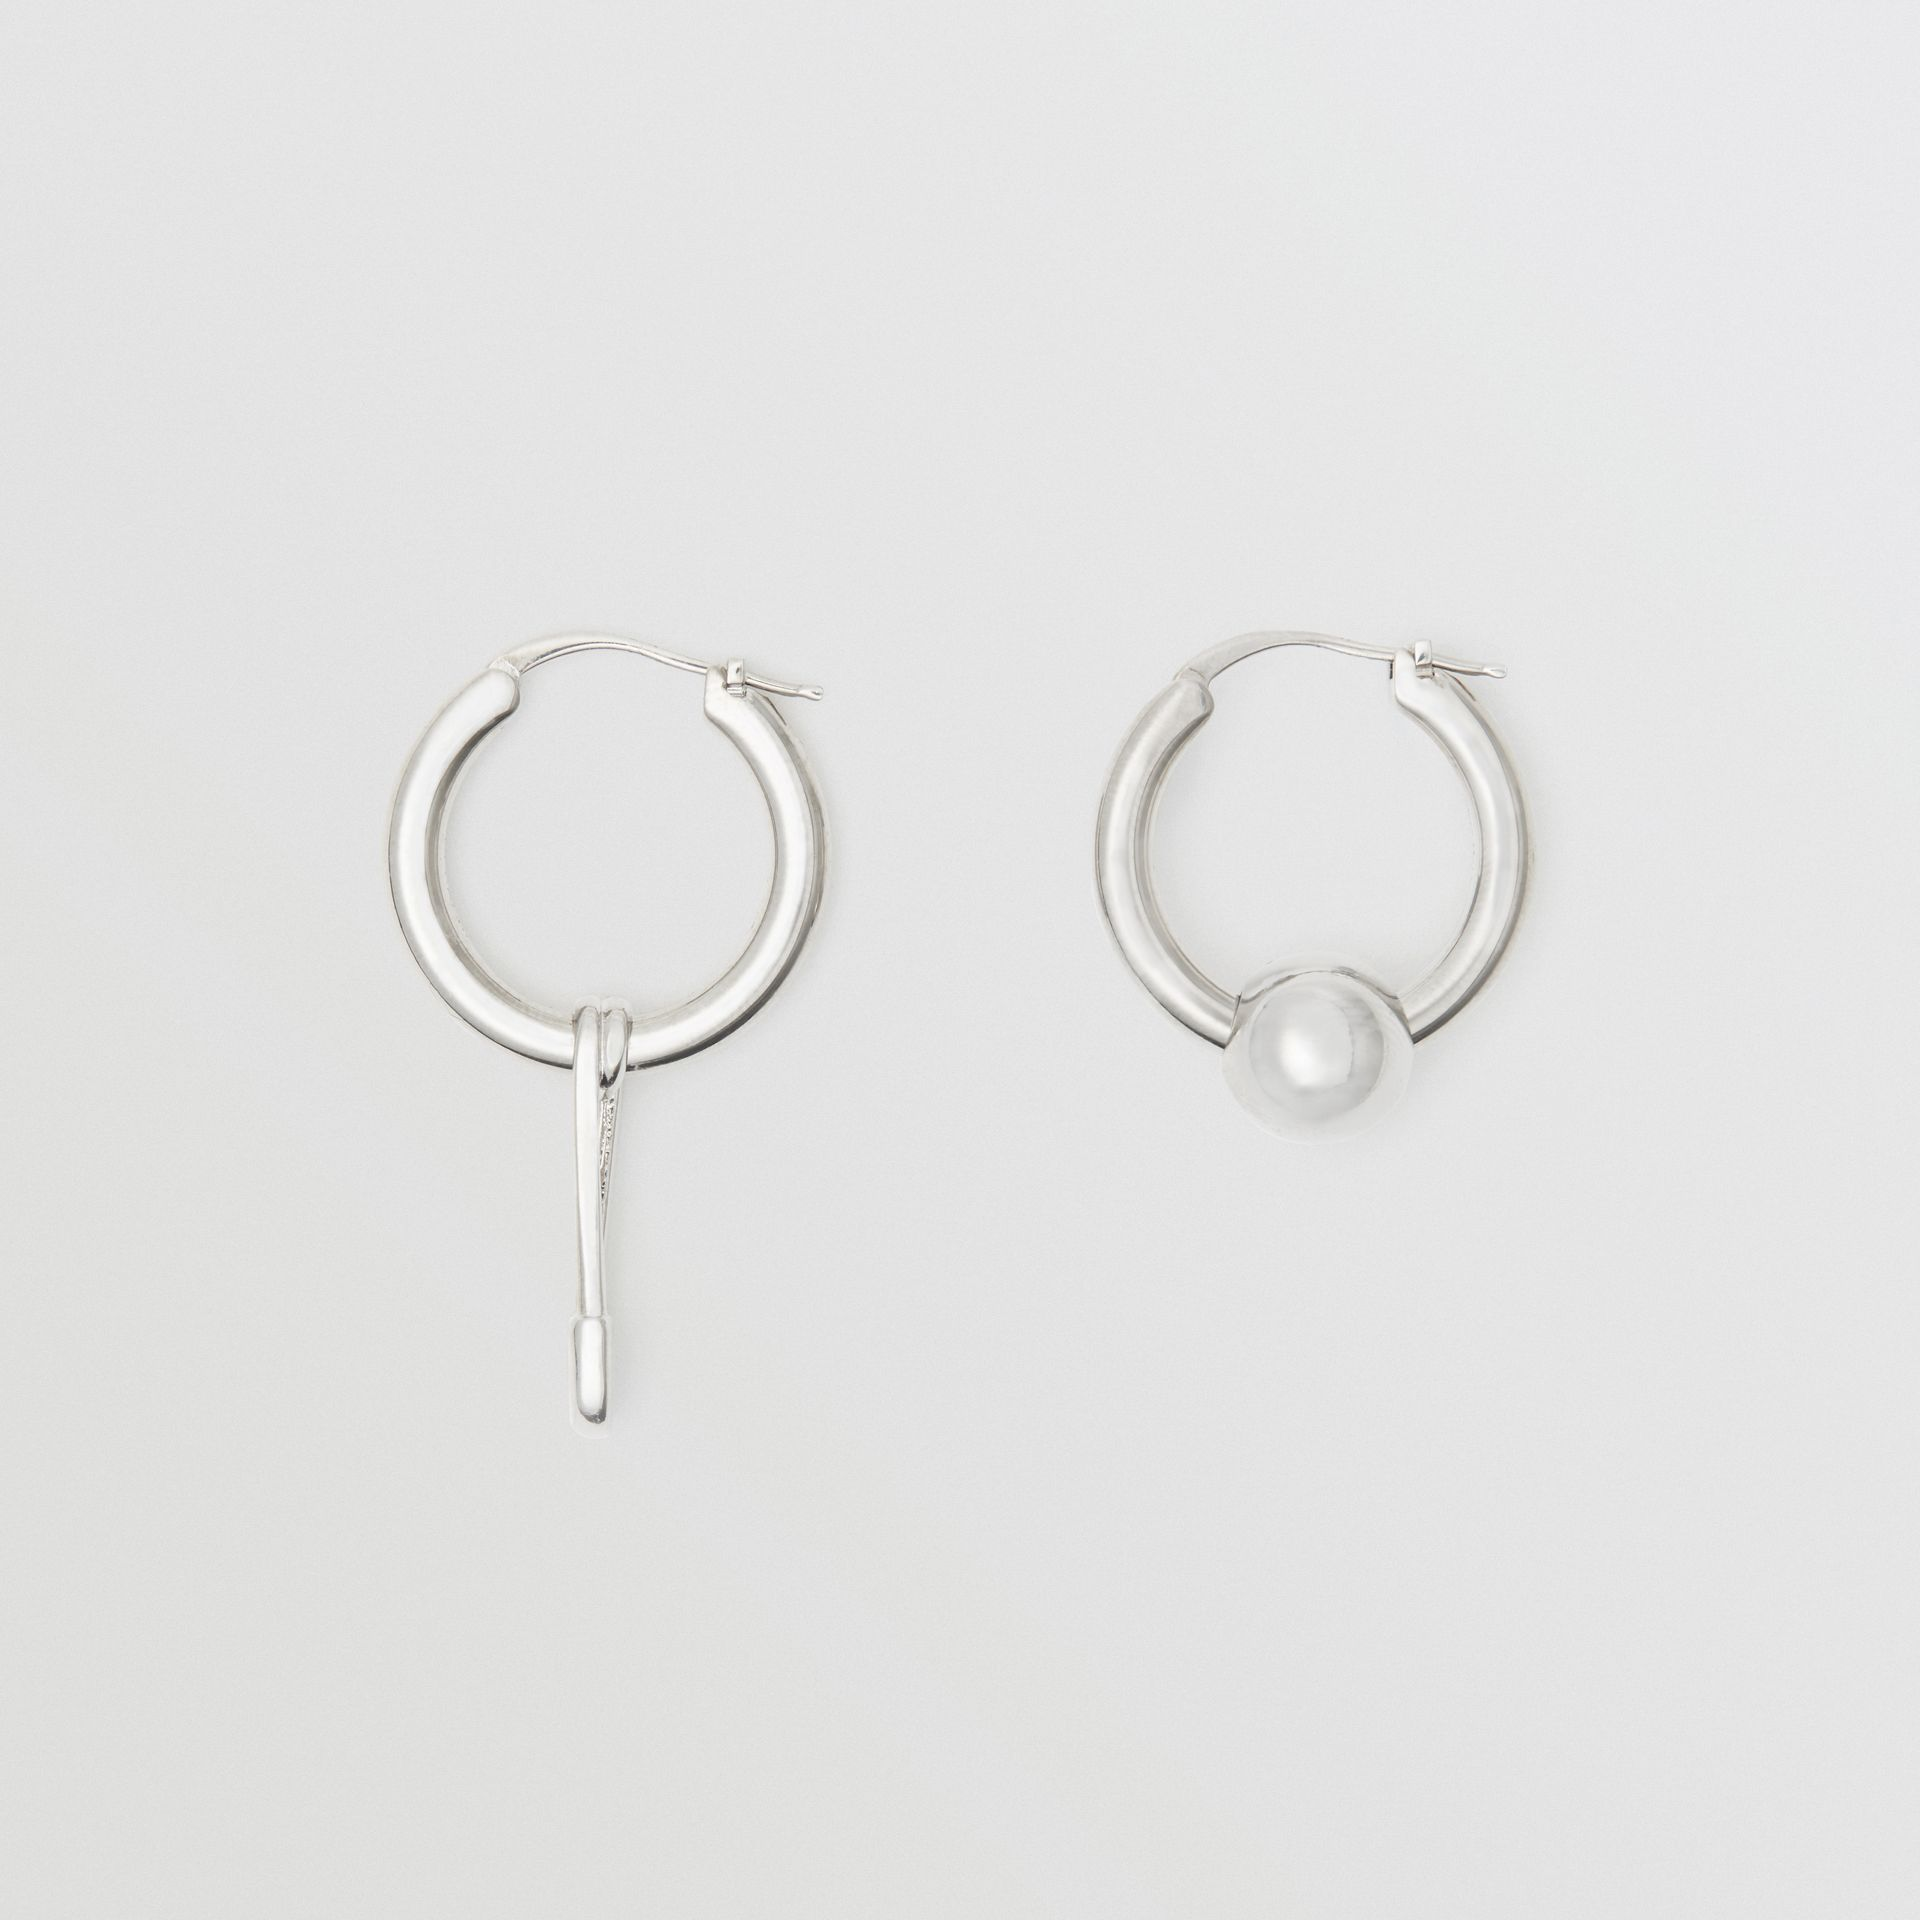 Kilt Pin and Charm Palladium-plated Hoop Earrings in Palladio - Women | Burberry - gallery image 0